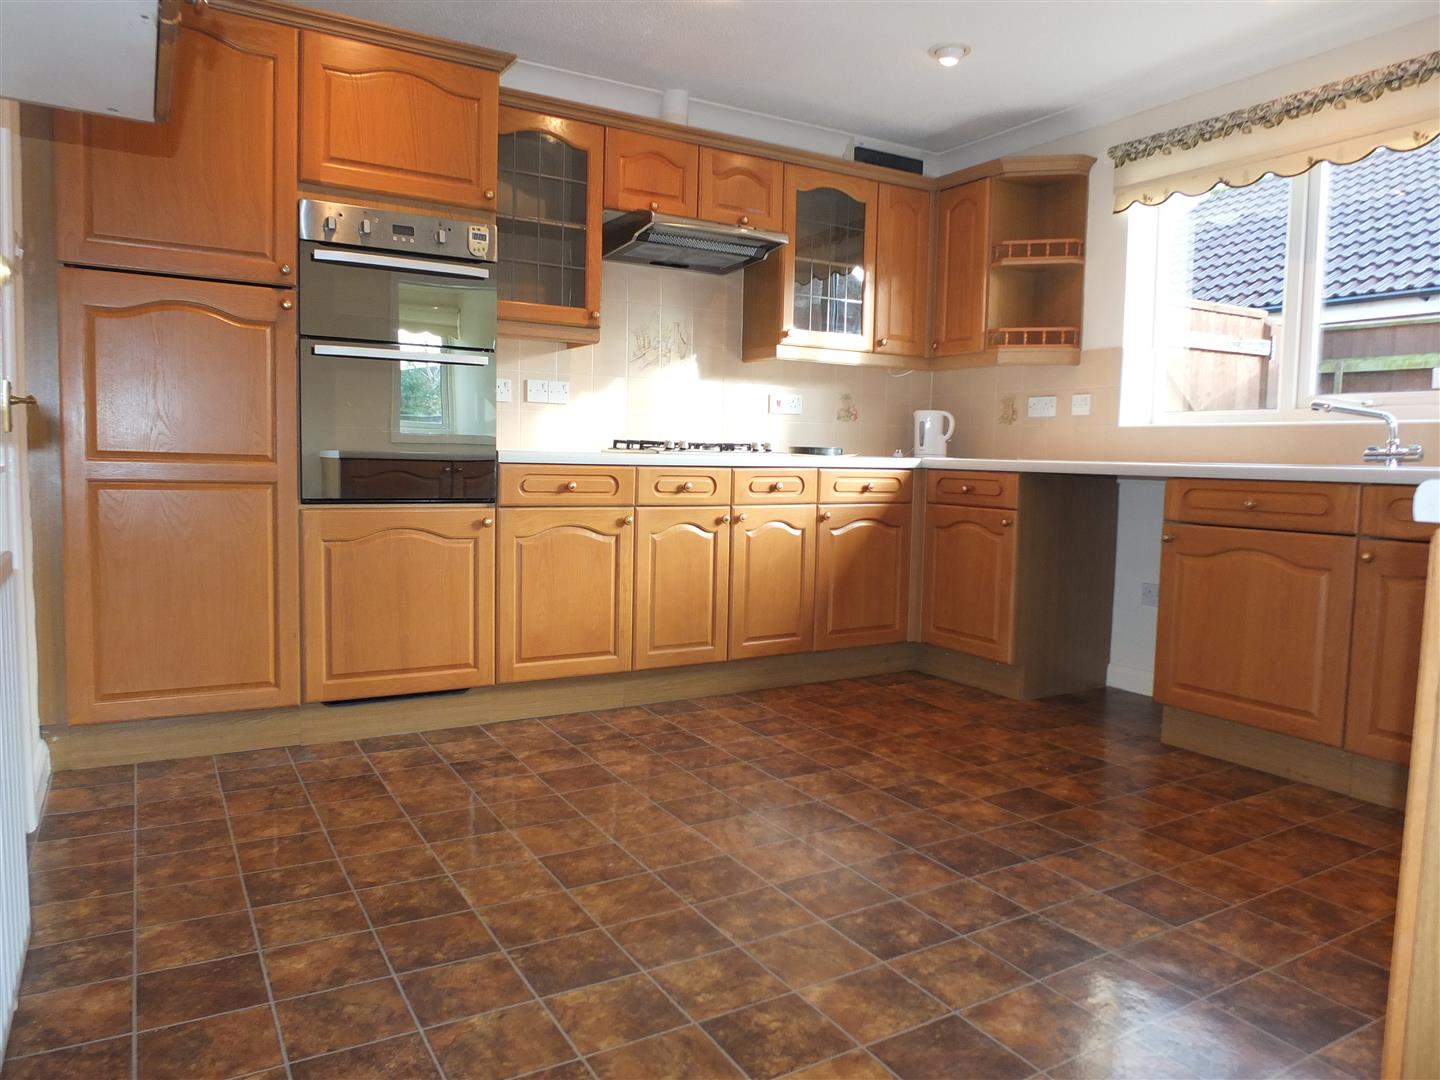 3 bed detached bungalow to rent in Spalding, PE12 9FA 1